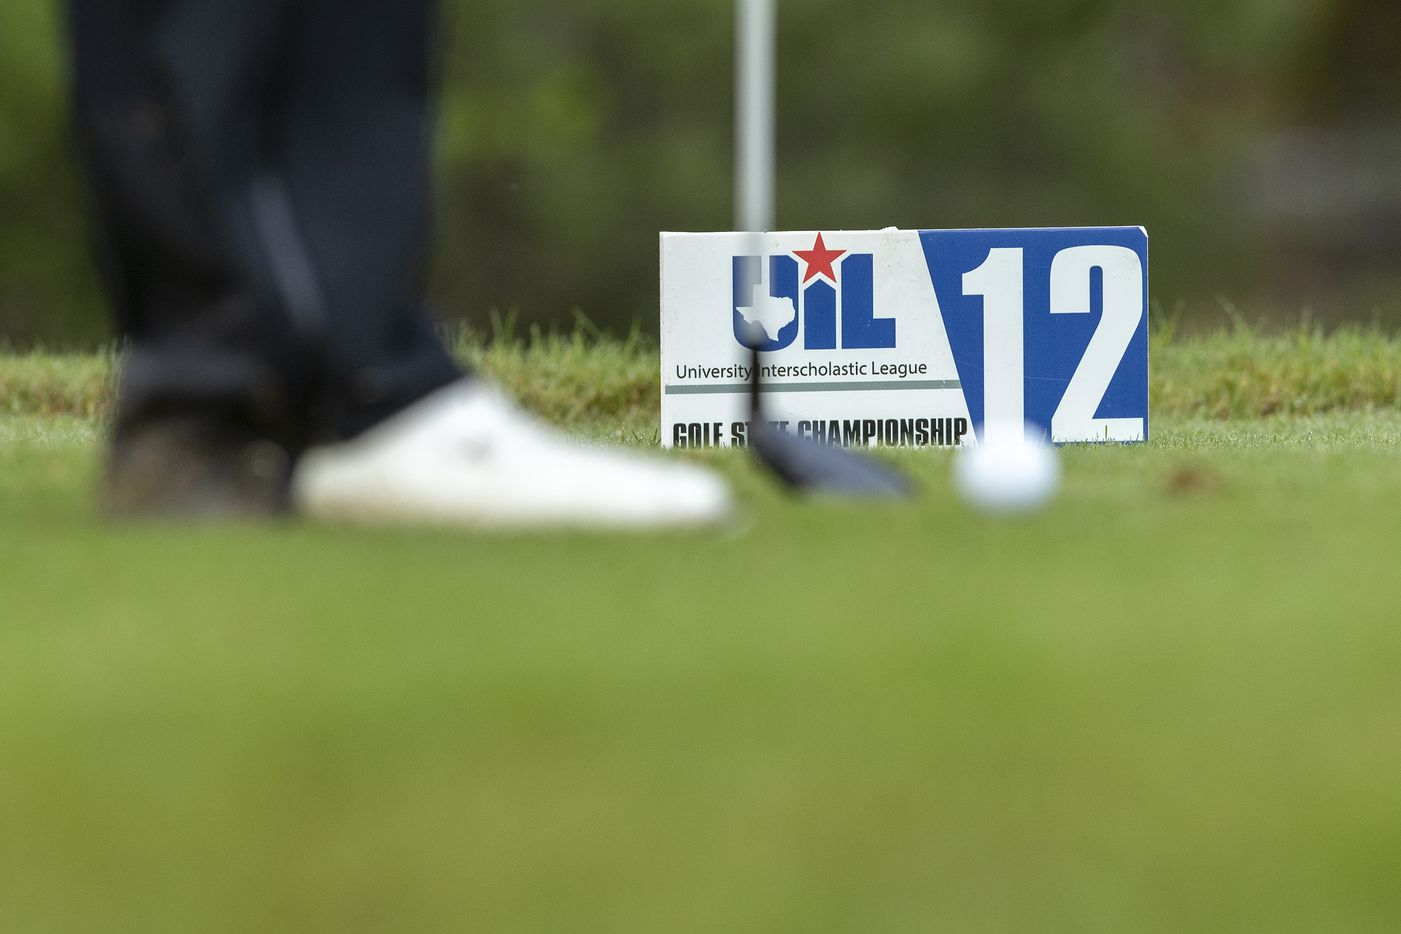 Highland ParkÕs Thompson Huthnance prepares to hit from the 12th tee box during round 1 of the UIL Class 5A boys golf tournament in Georgetown, Monday, May 17, 2021. (Stephen Spillman/Special Contributor)